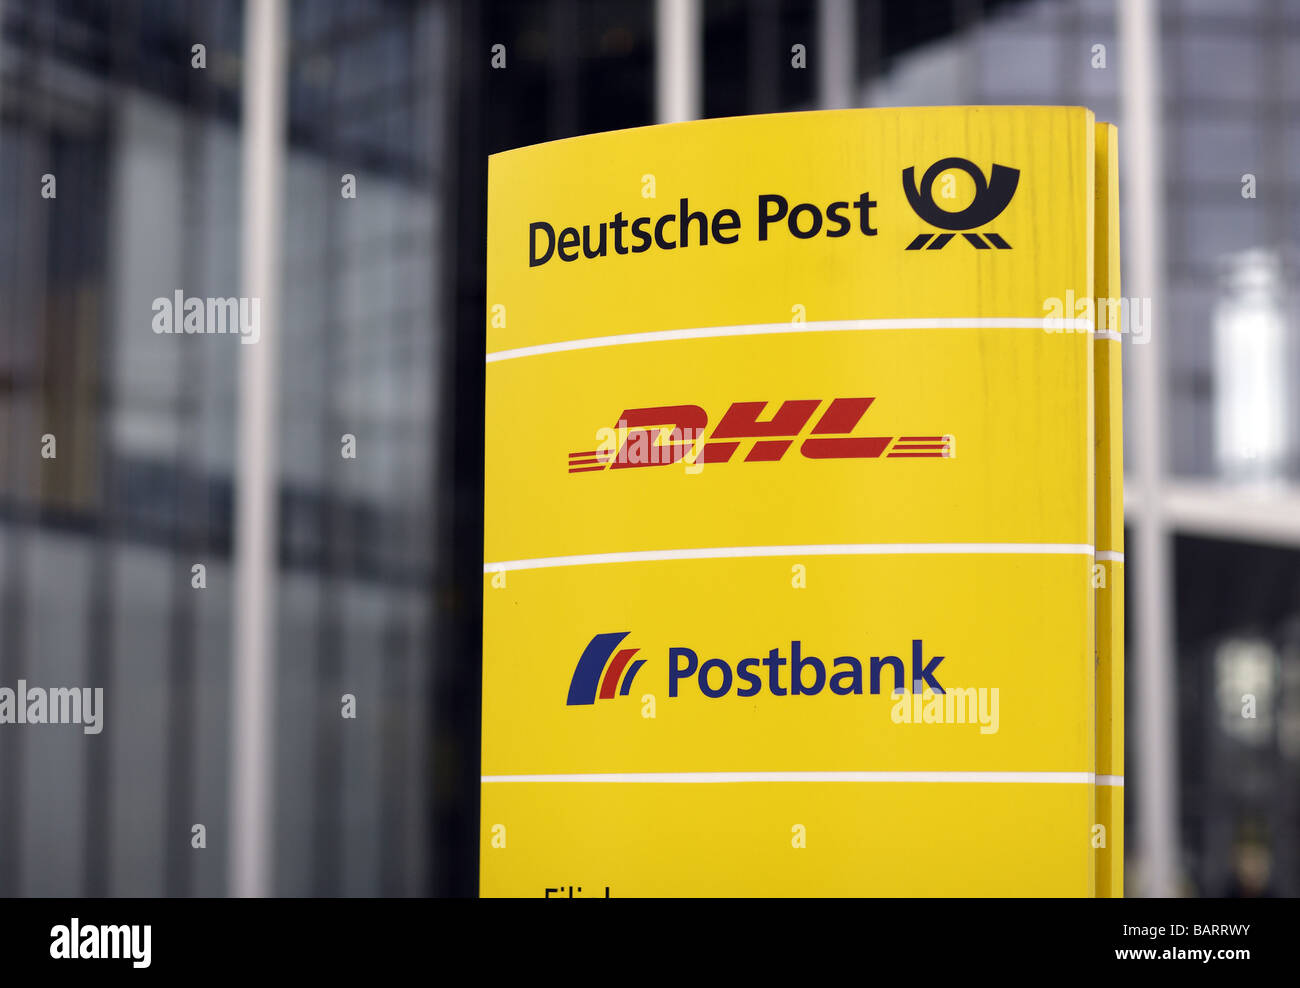 deutsche post dhl postbank logos stockfoto bild 23880583 alamy. Black Bedroom Furniture Sets. Home Design Ideas